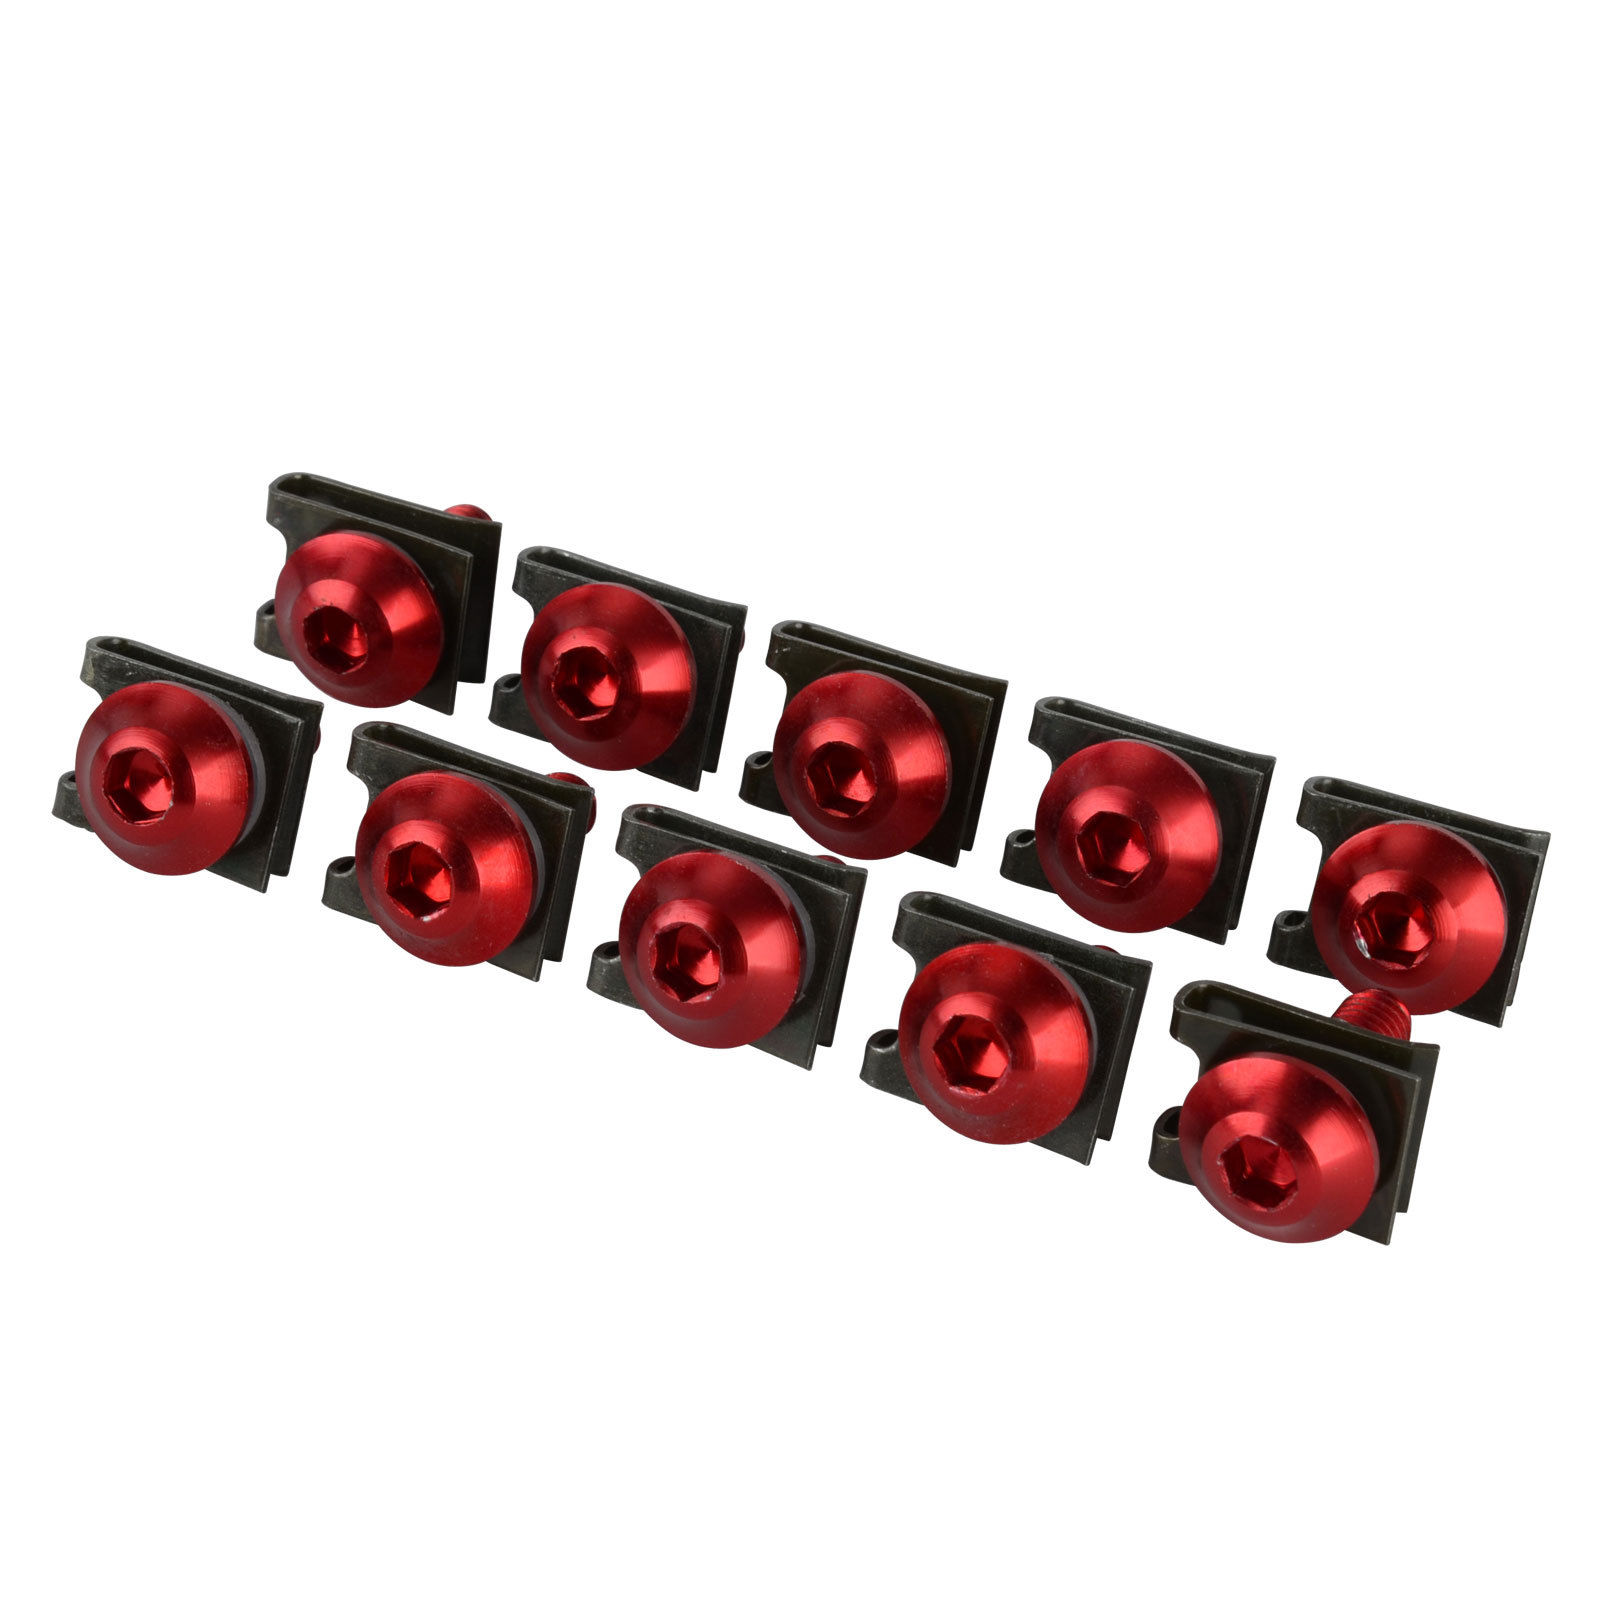 10x 6mm Aluminum Fairing Bolts Clips U Spring Nuts Kit Red